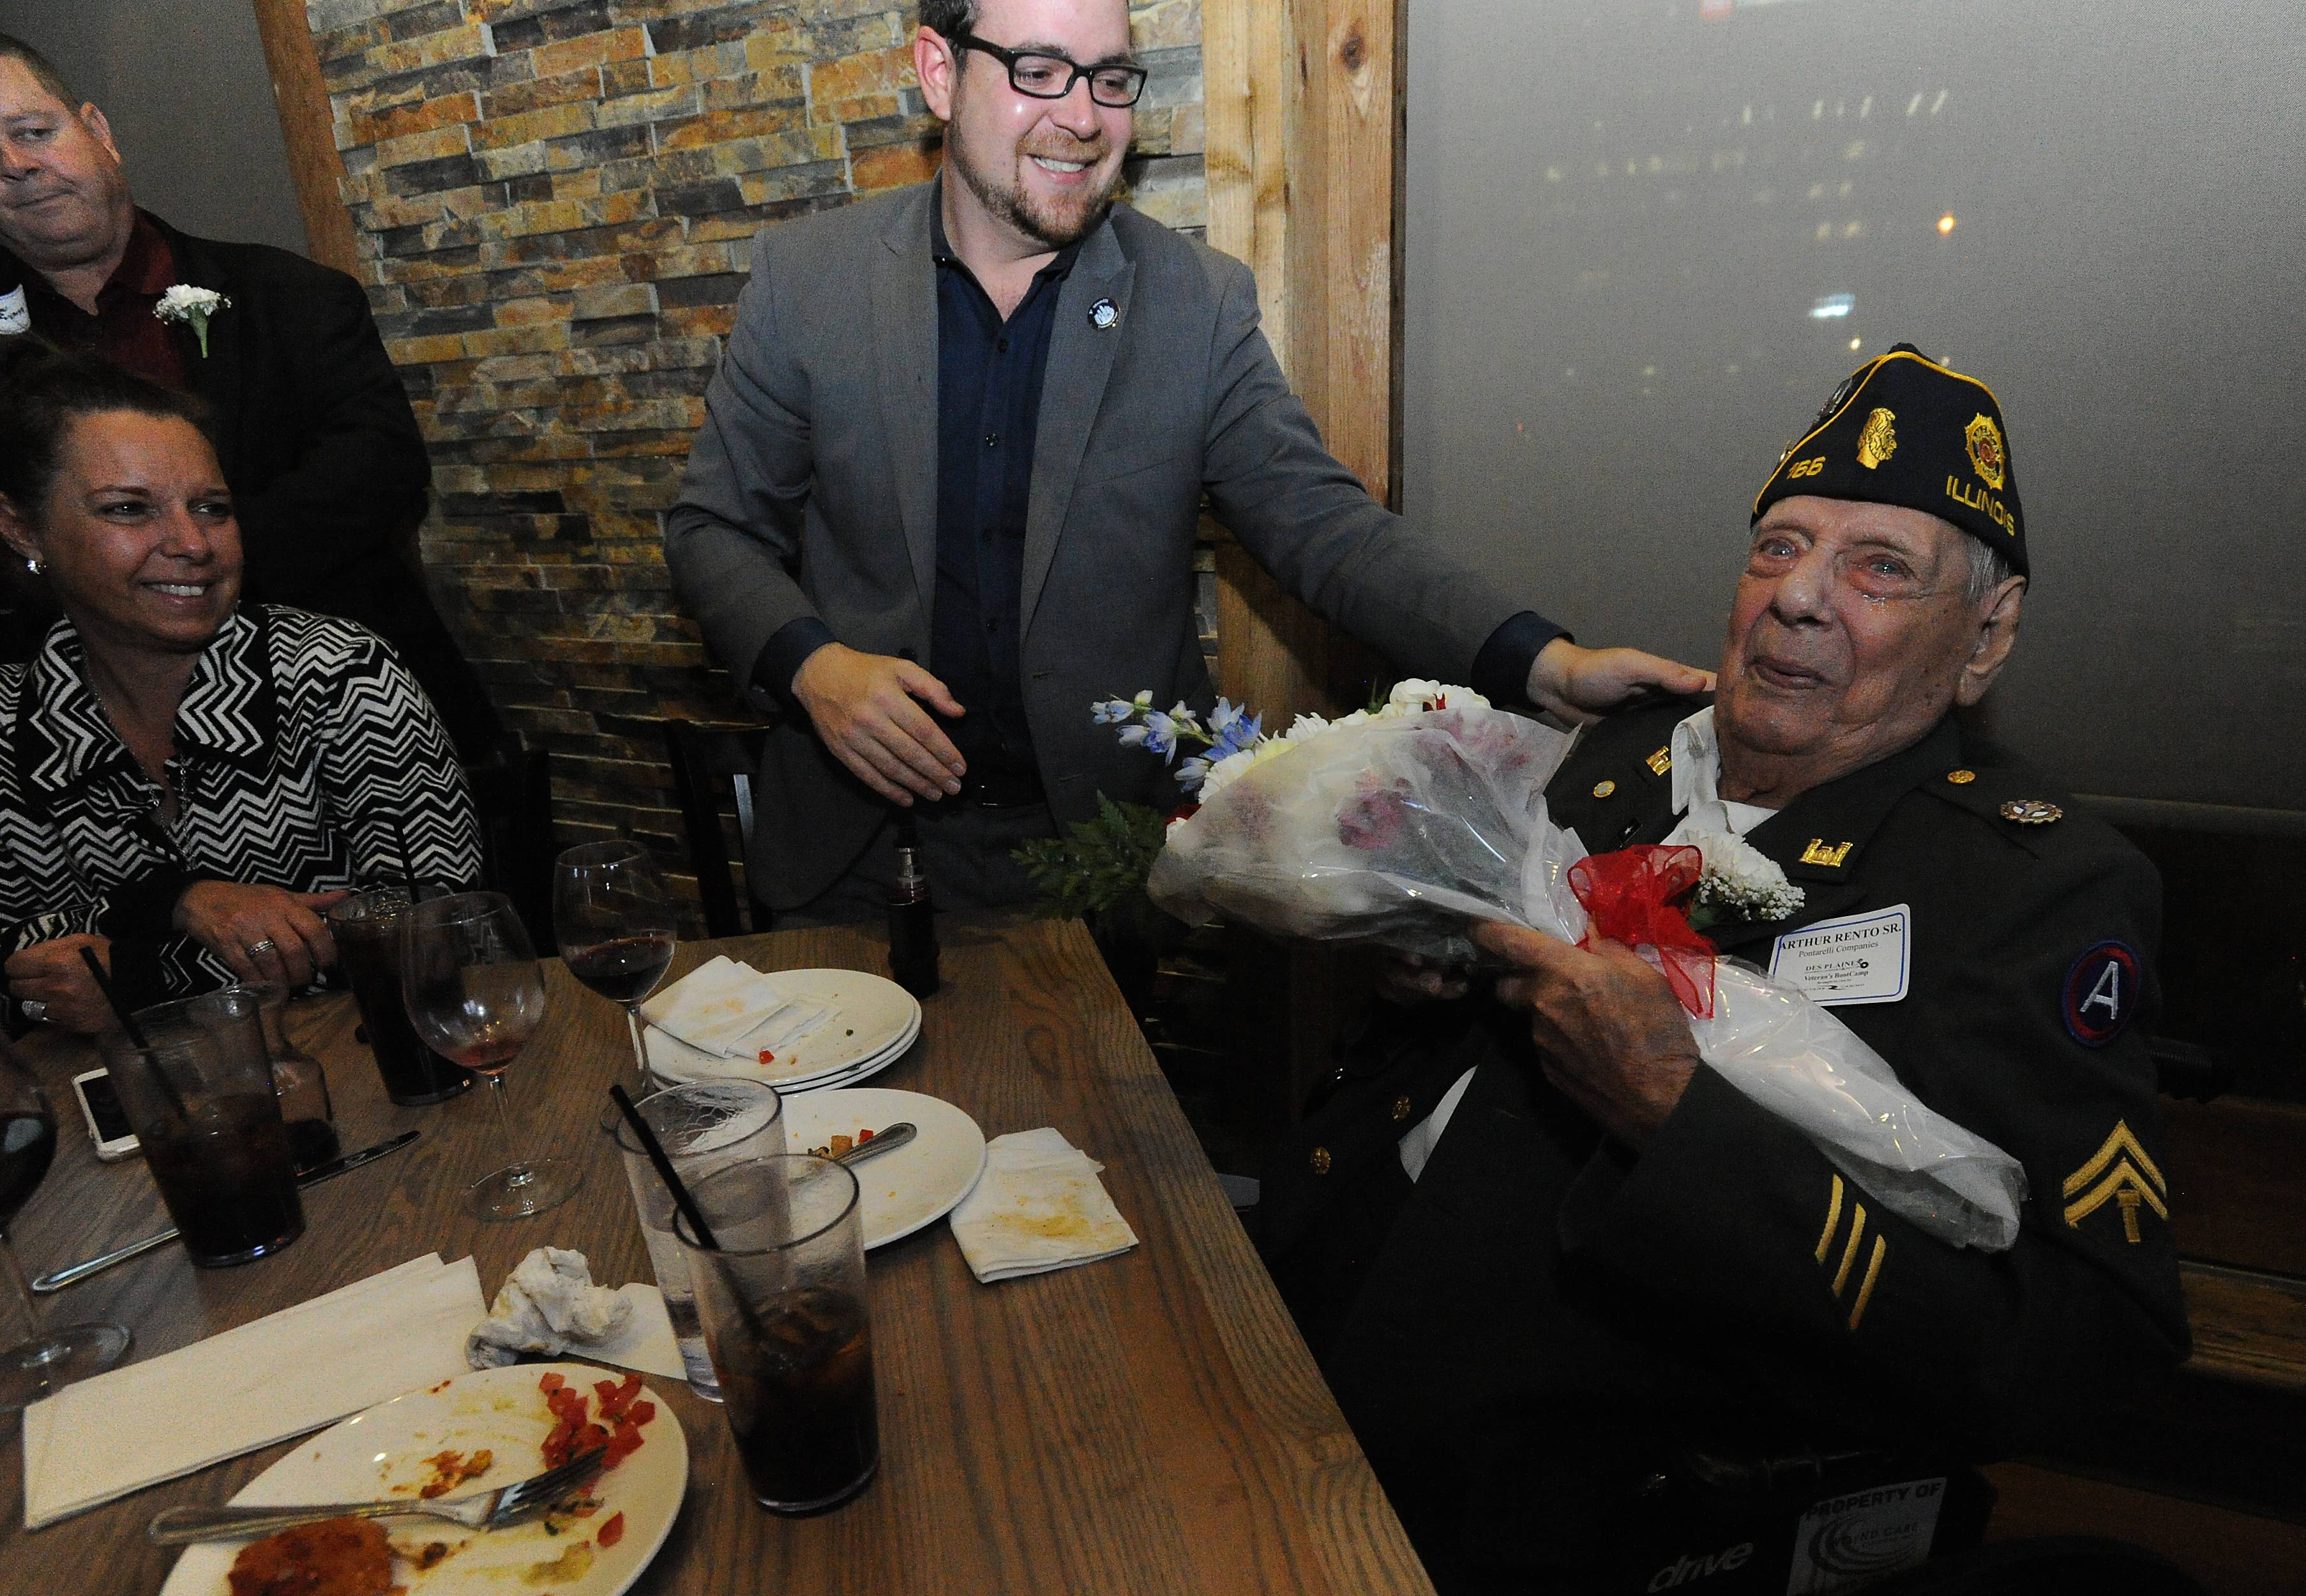 Arthur Rento Sr., 94, of Glenview Corporal with the Army 1st Infantry who served at Normandy, Battle of the Bulge and in the Asian Pacific Campaign was honored at the Des Plaines Chamber of Commerce Veterans ceremony in Rosemont Thursday.